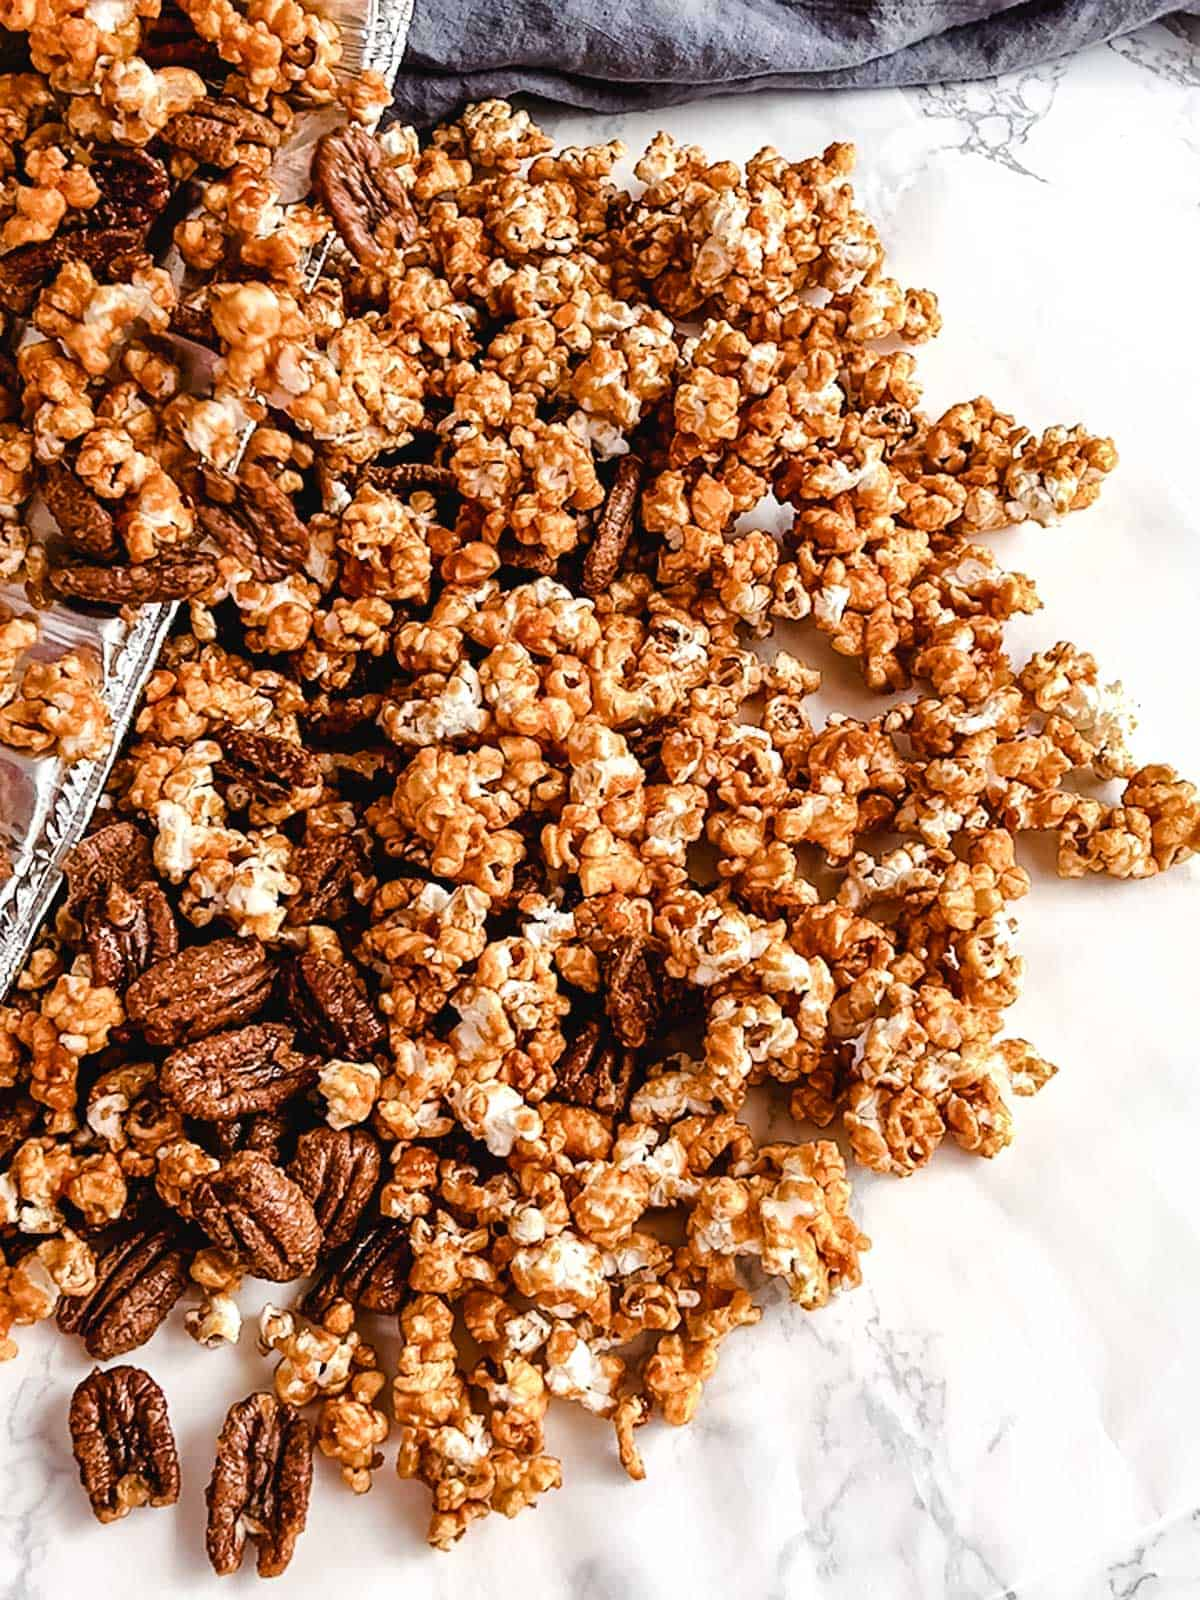 Pouring the Bourbon Pecan Praline Popcorn onto parchment paper for it to cool.